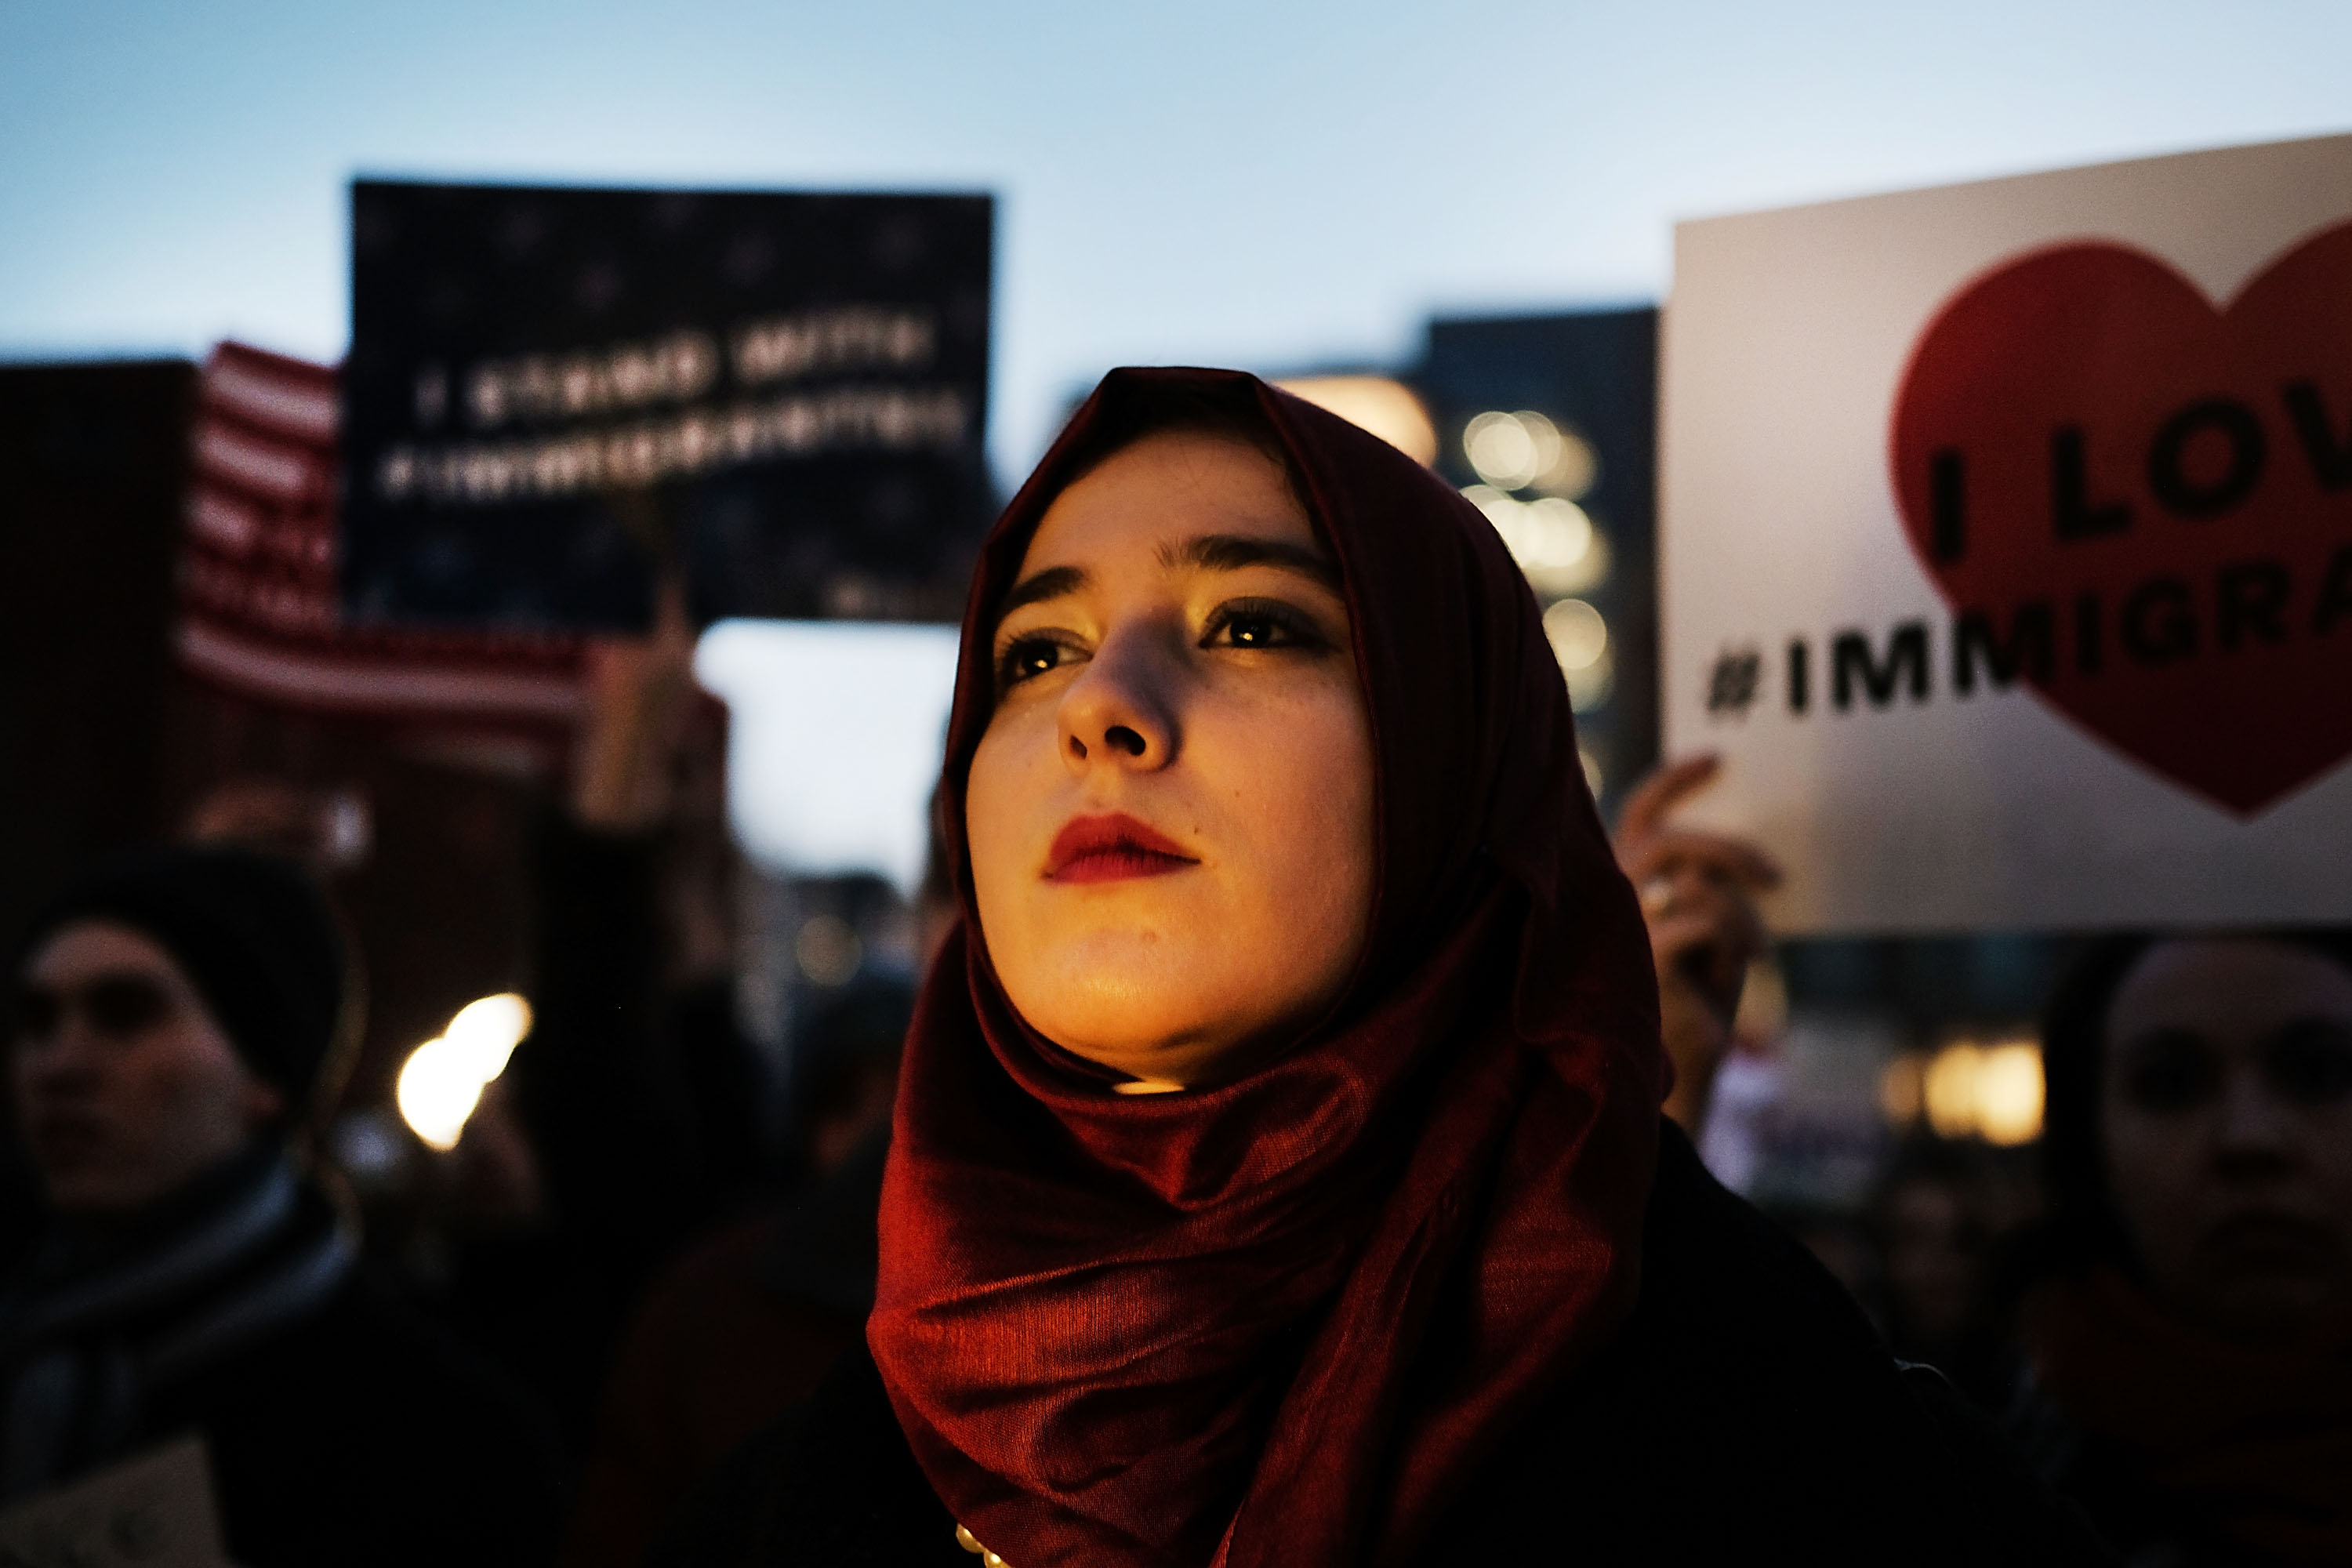 Hundreds of people attend an evening rally at Washington Square Park in support of Muslims, immigrants and against the building of a wall along the Mexican border on January 25, 2017 in New York City.   (Spencer Platt--Getty Images)